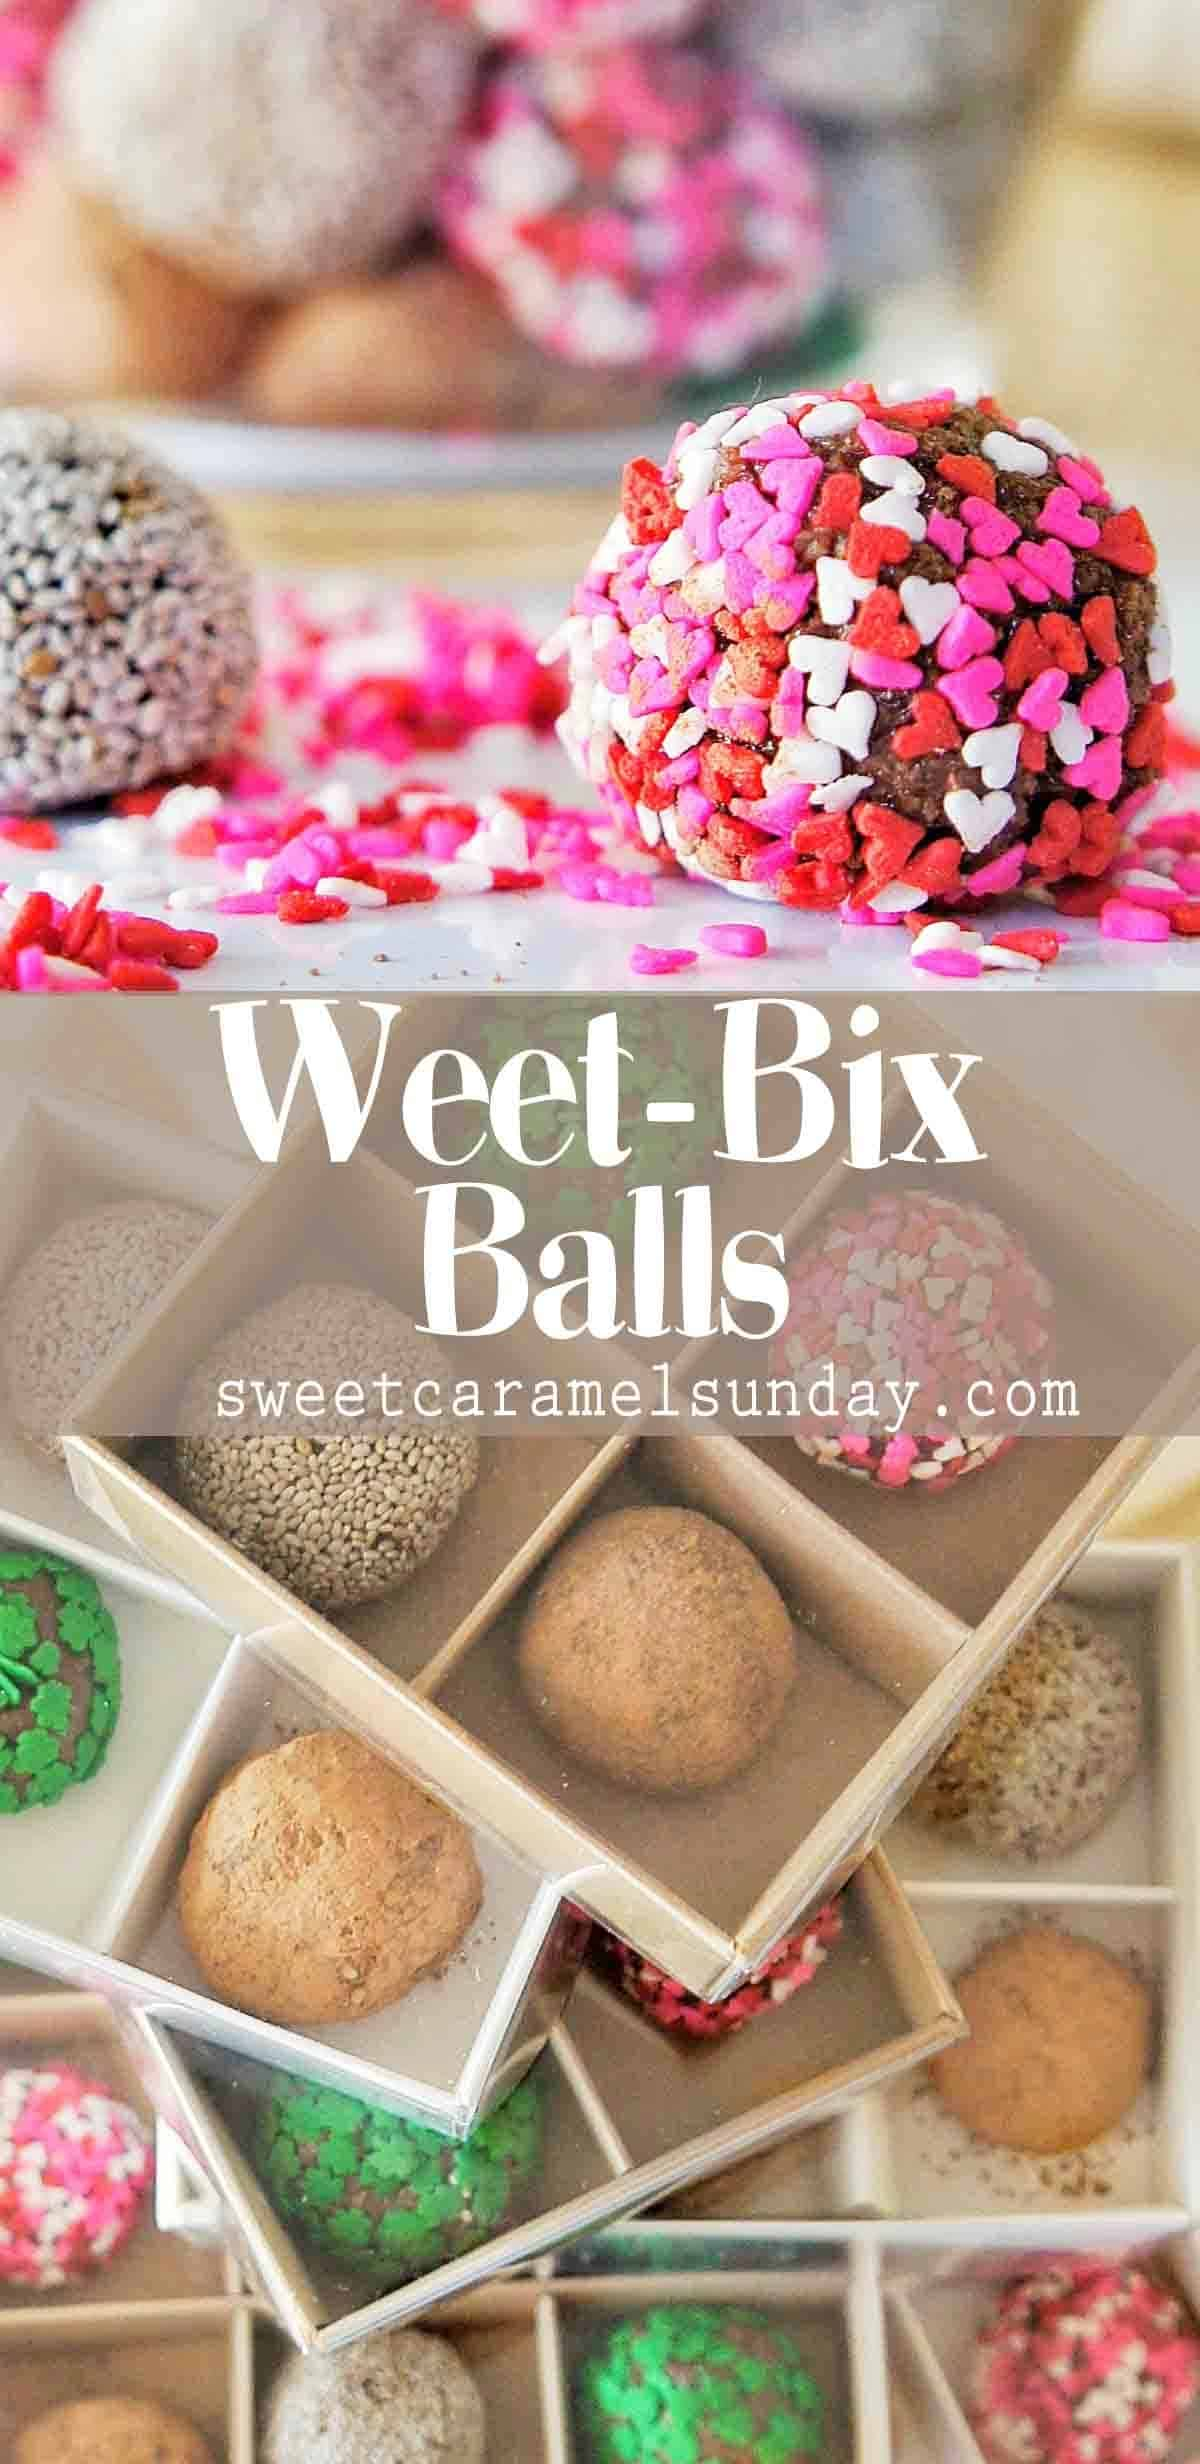 Weet-Bix Balls with text overlay